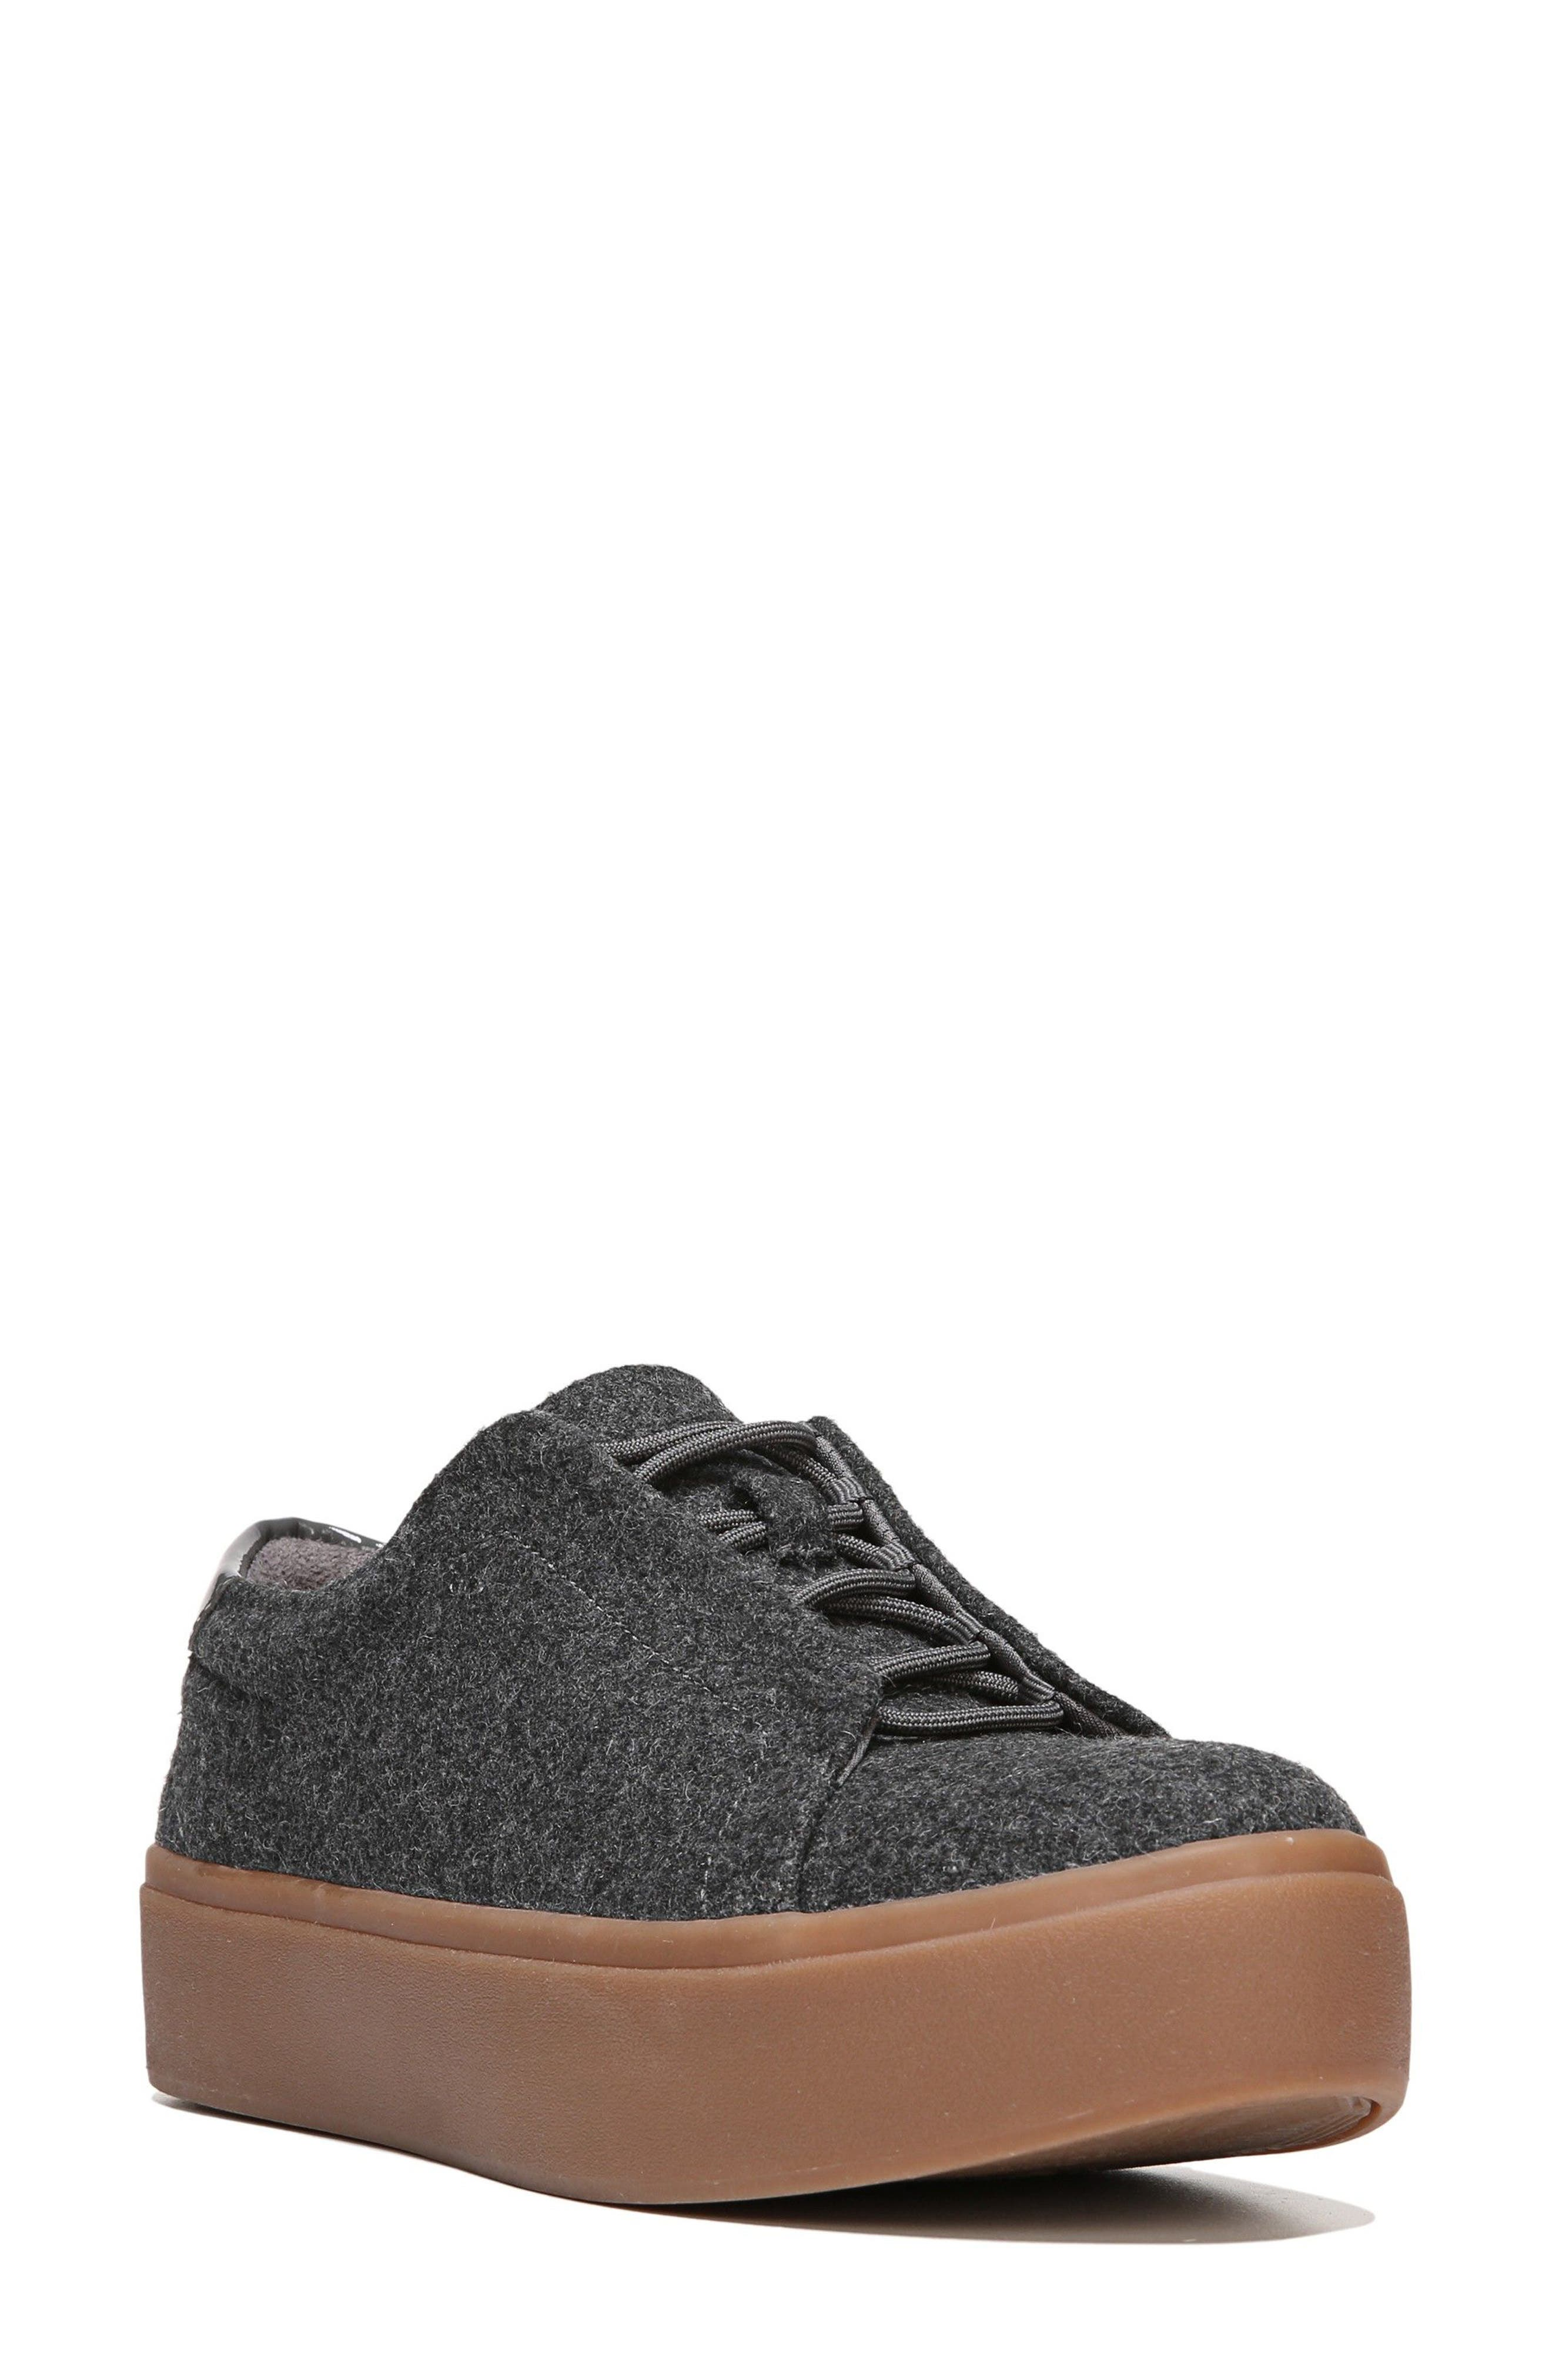 Abbot Sneaker,                             Main thumbnail 1, color,                             Charcoal Fabric